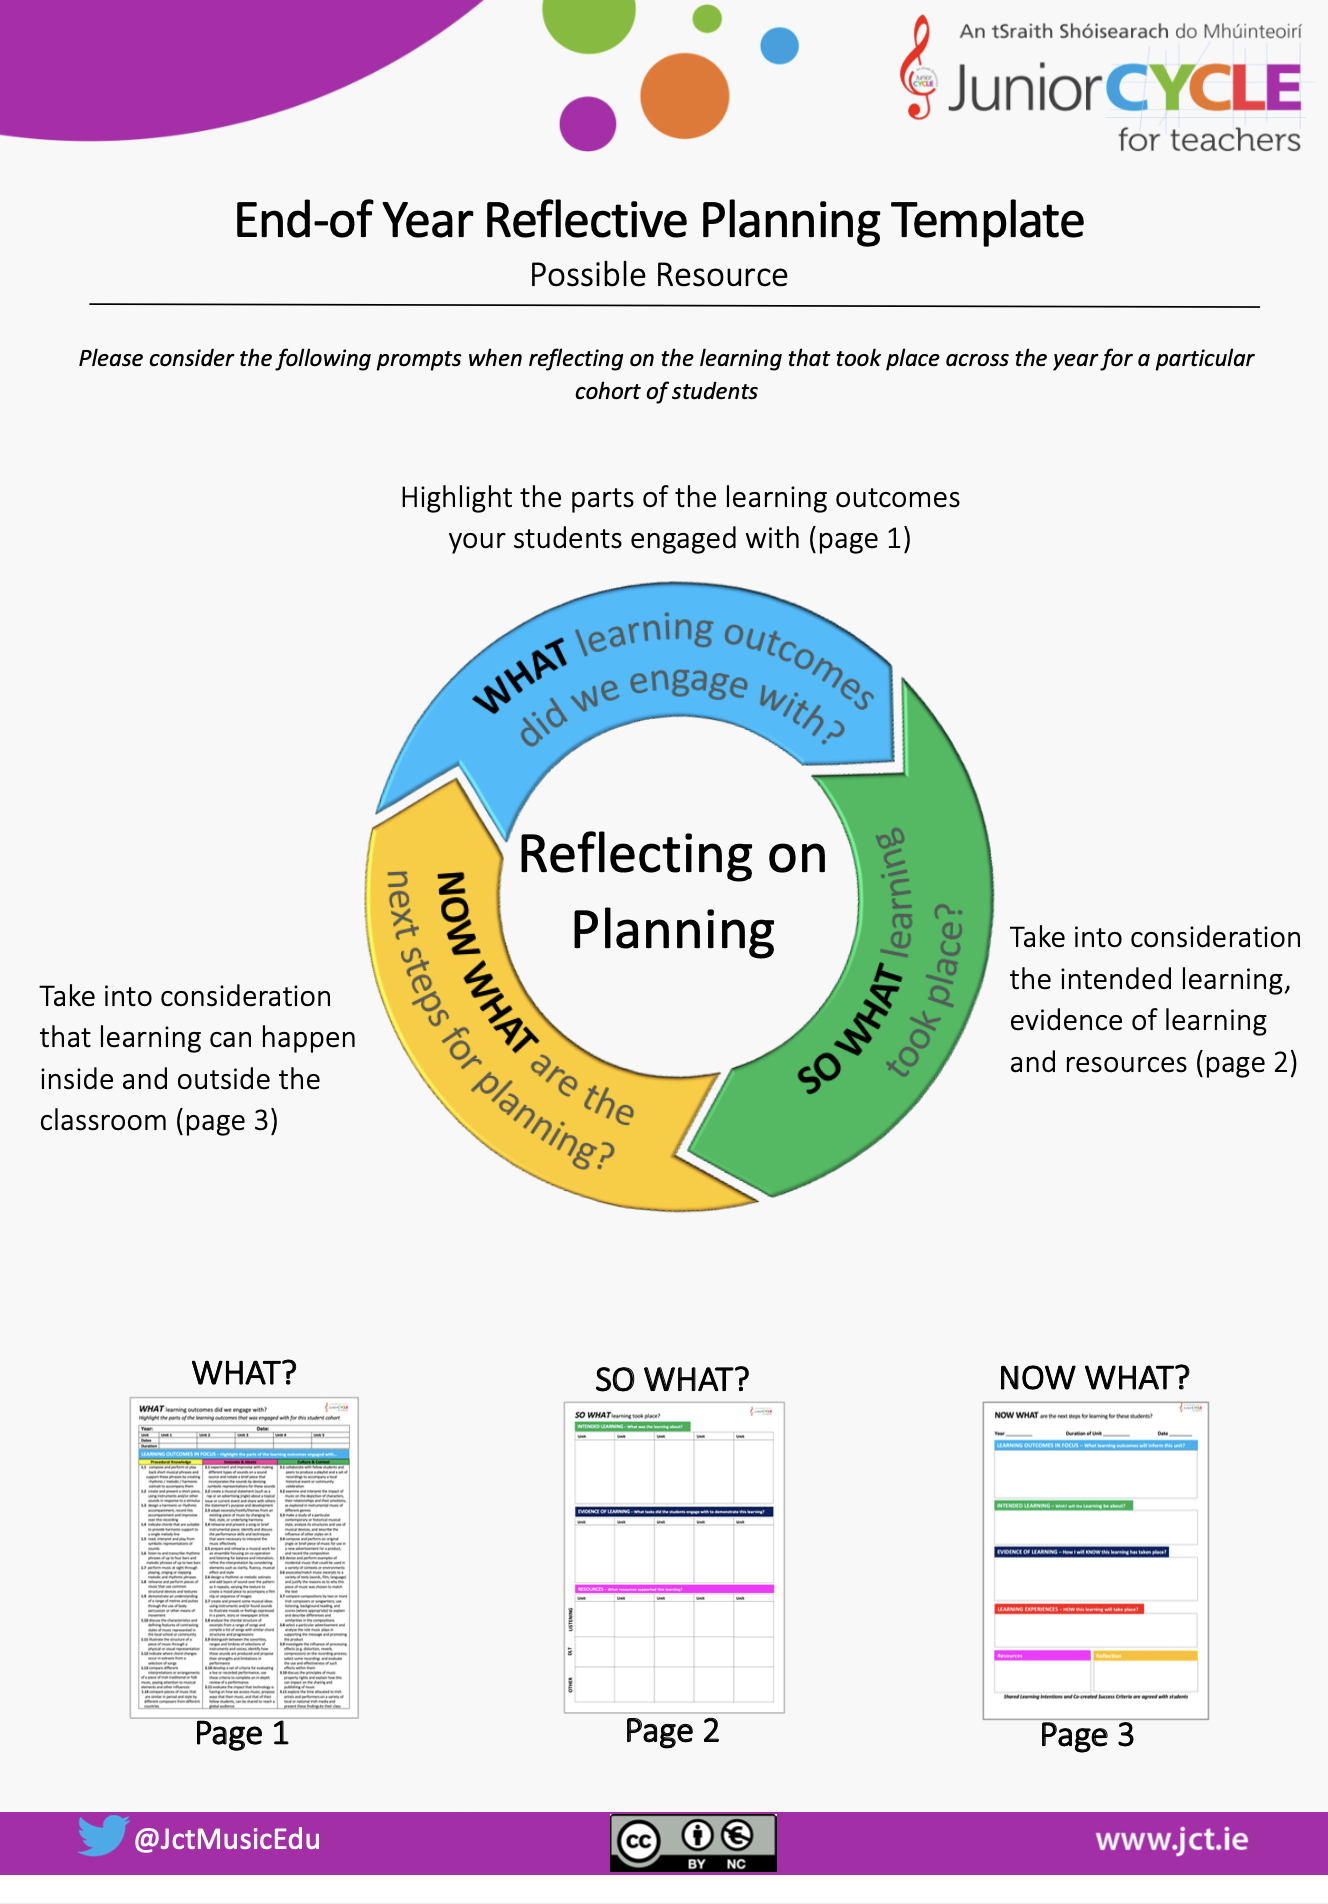 End-of-year Reflective Planning Template EDITABLE